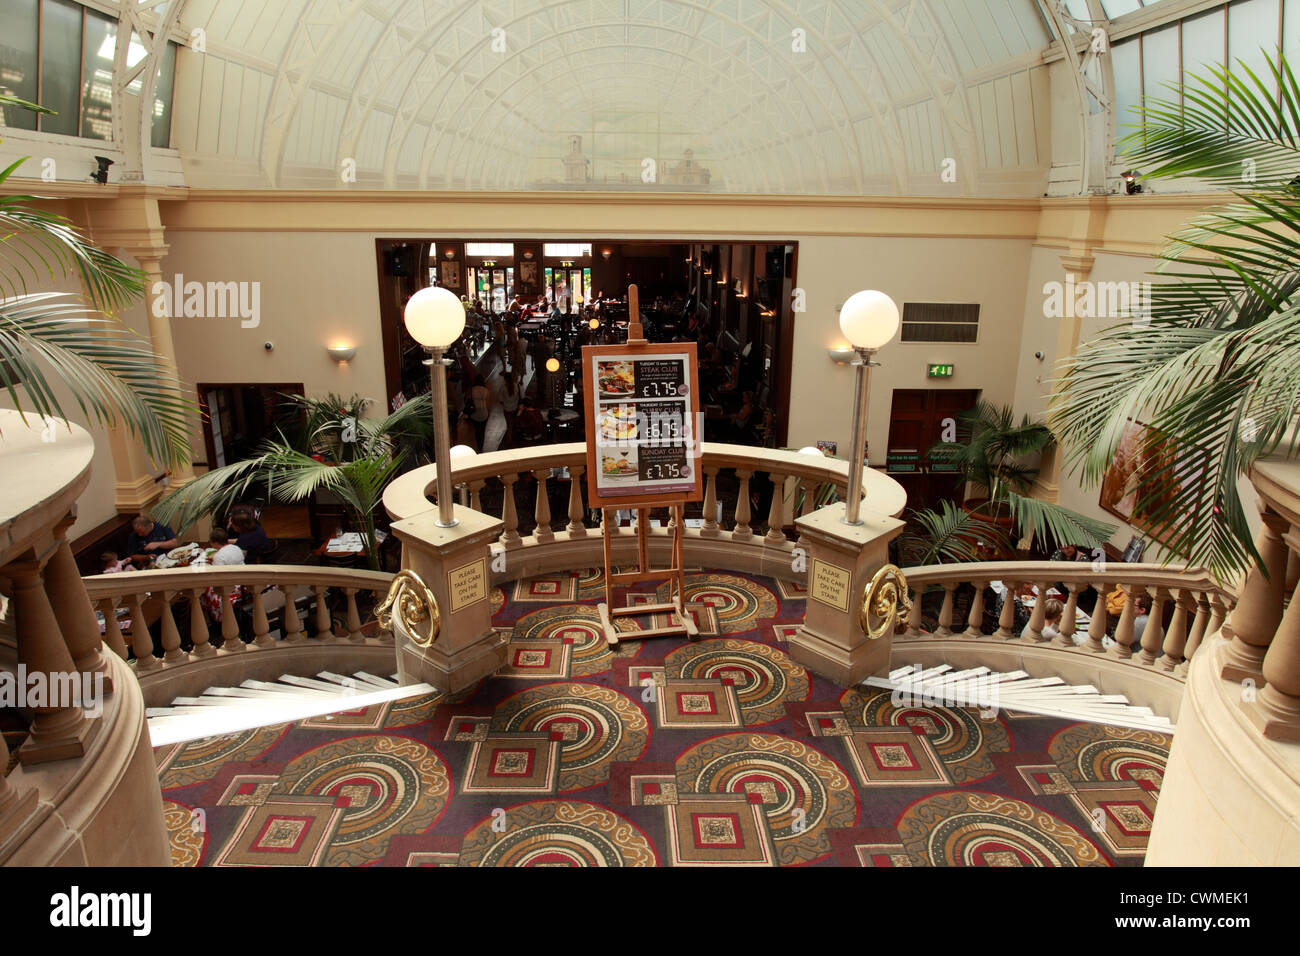 The winter gardens pub, owned by JD Wetherspoons, Harrogate, Yorkshire UK - Stock Image